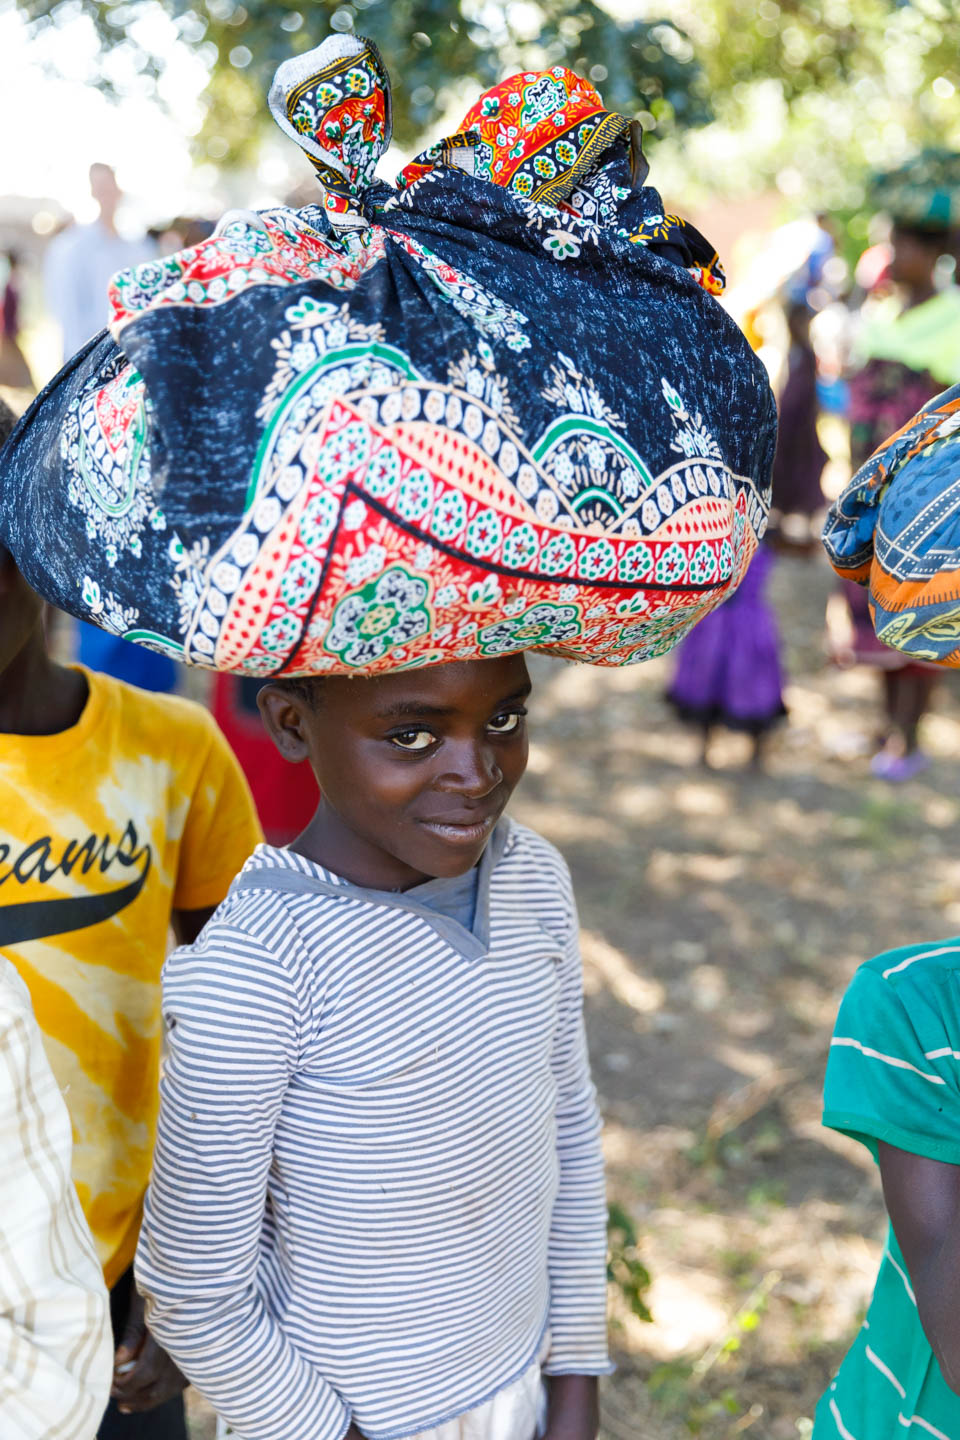 A Malawian child with a bundle on her head